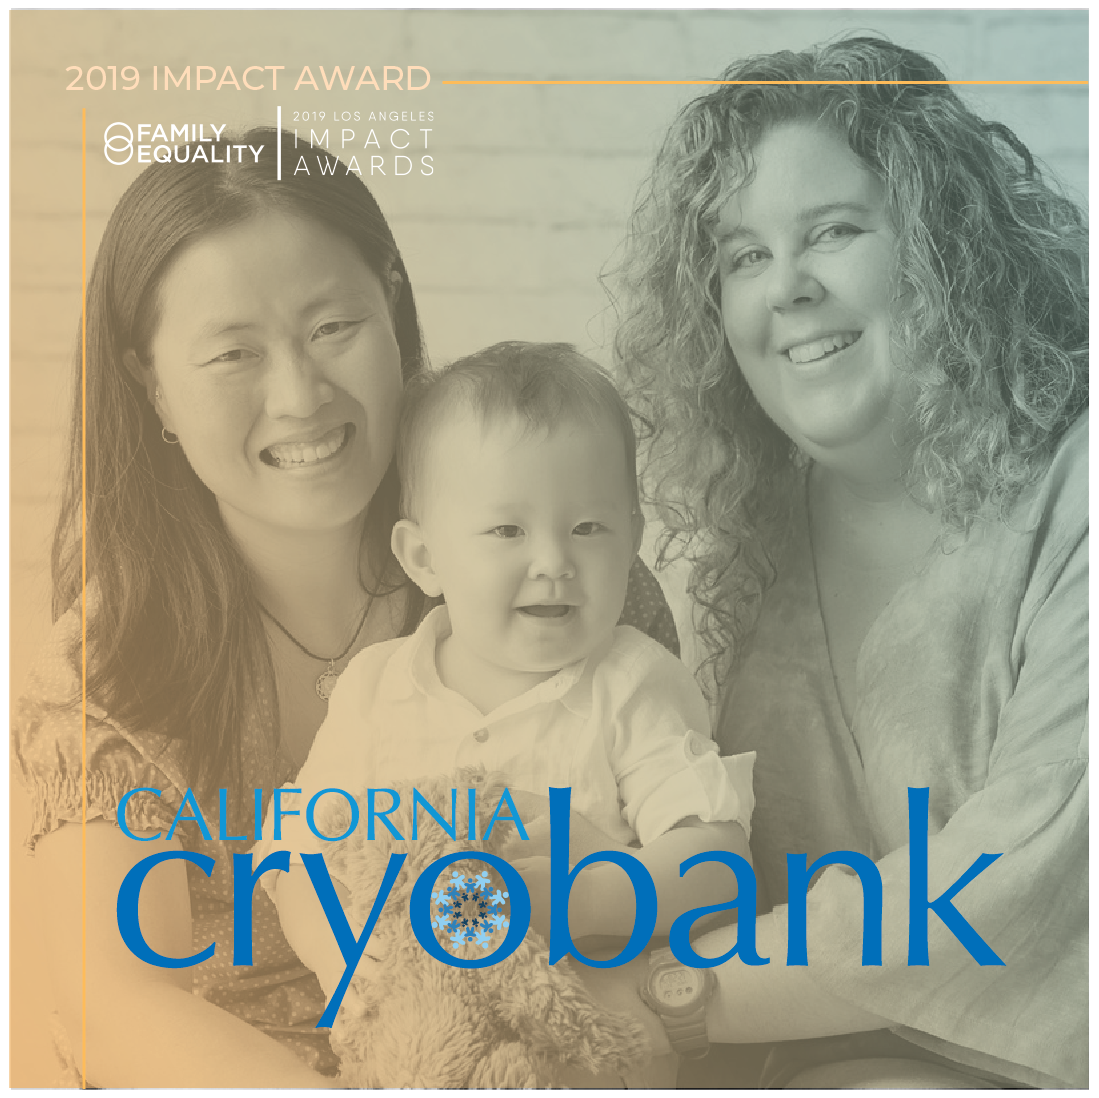 Sample caption: California Cryobank has been supporting #LGBTQ families since before it was cool. And I get to join  @  familyequality  in celebrating them at the #LAImpactAwards. laimpactawards.com